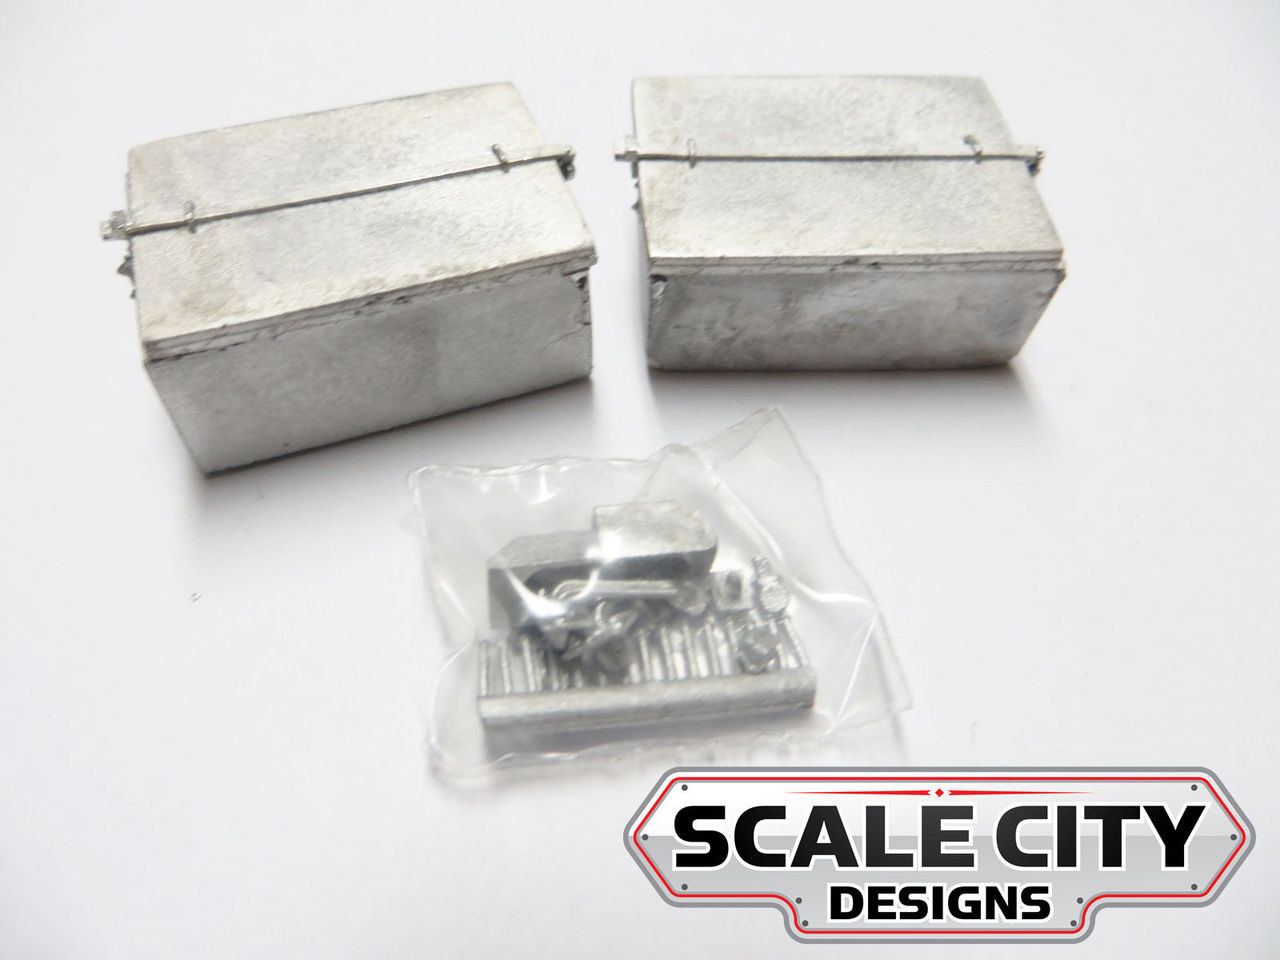 48-203 BATTERY VAULT LARGE RECTANGLE STYLE O SCALE FKA KEIL LINE 2 / 3 RAIL